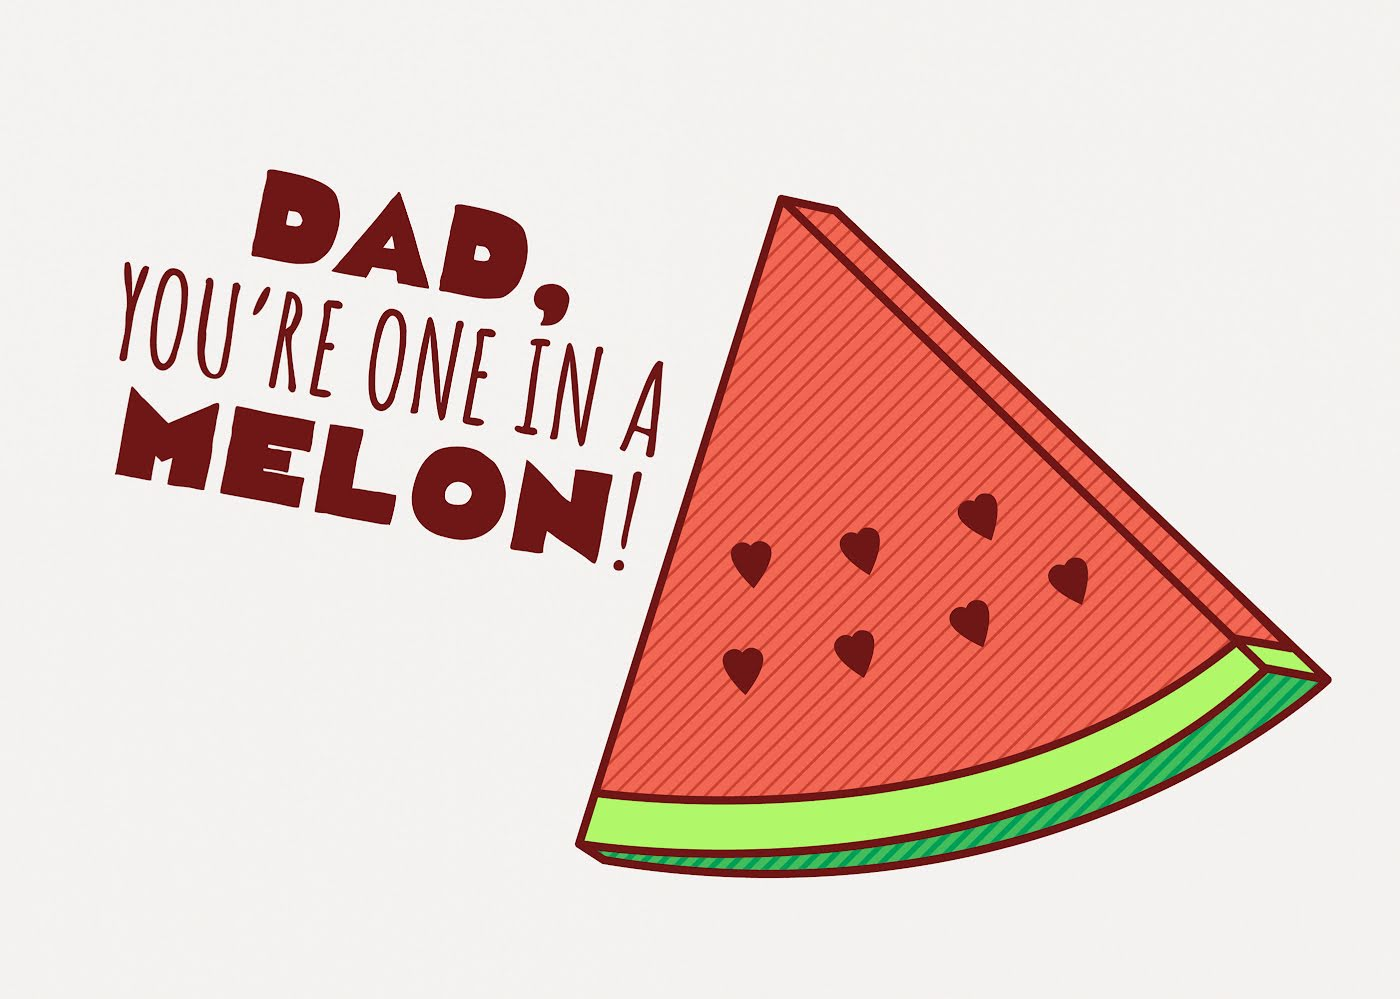 Dad you are one in a melon clipart transparent download Dad, You\'re One In a Melon transparent download